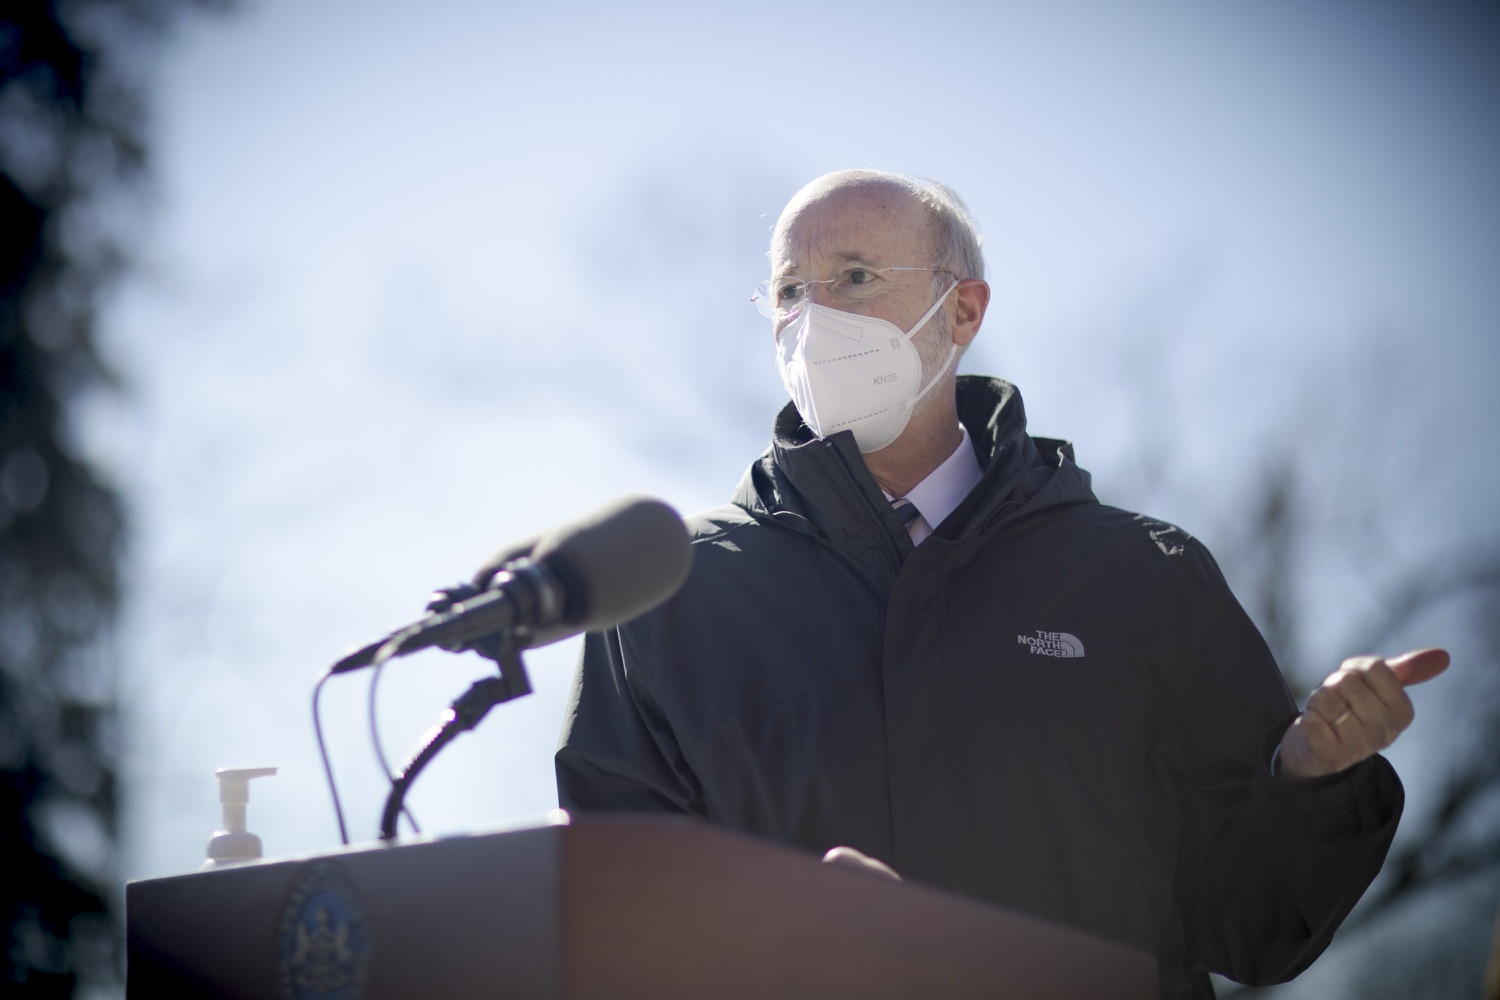 "<a href=""https://filesource.wostreaming.net/commonwealthofpa/photo/18560_gov_chirp_dz_15.jpg"" target=""_blank"">⇣ Download Photo<br></a>Pennsylvania Governor Tom Wolf answers questions from the press.  Governor Tom Wolf announced today that the hospitality industry will soon be able to apply for immediate relief through the COVID-19 Hospitality Industry Recovery Program (CHIRP), a new grant program established by the Wolf Administration to support local businesses in the hospitality industry that were affected by the COVID-19 pandemic. Harrisburg, PA  March 2, 2021. .."